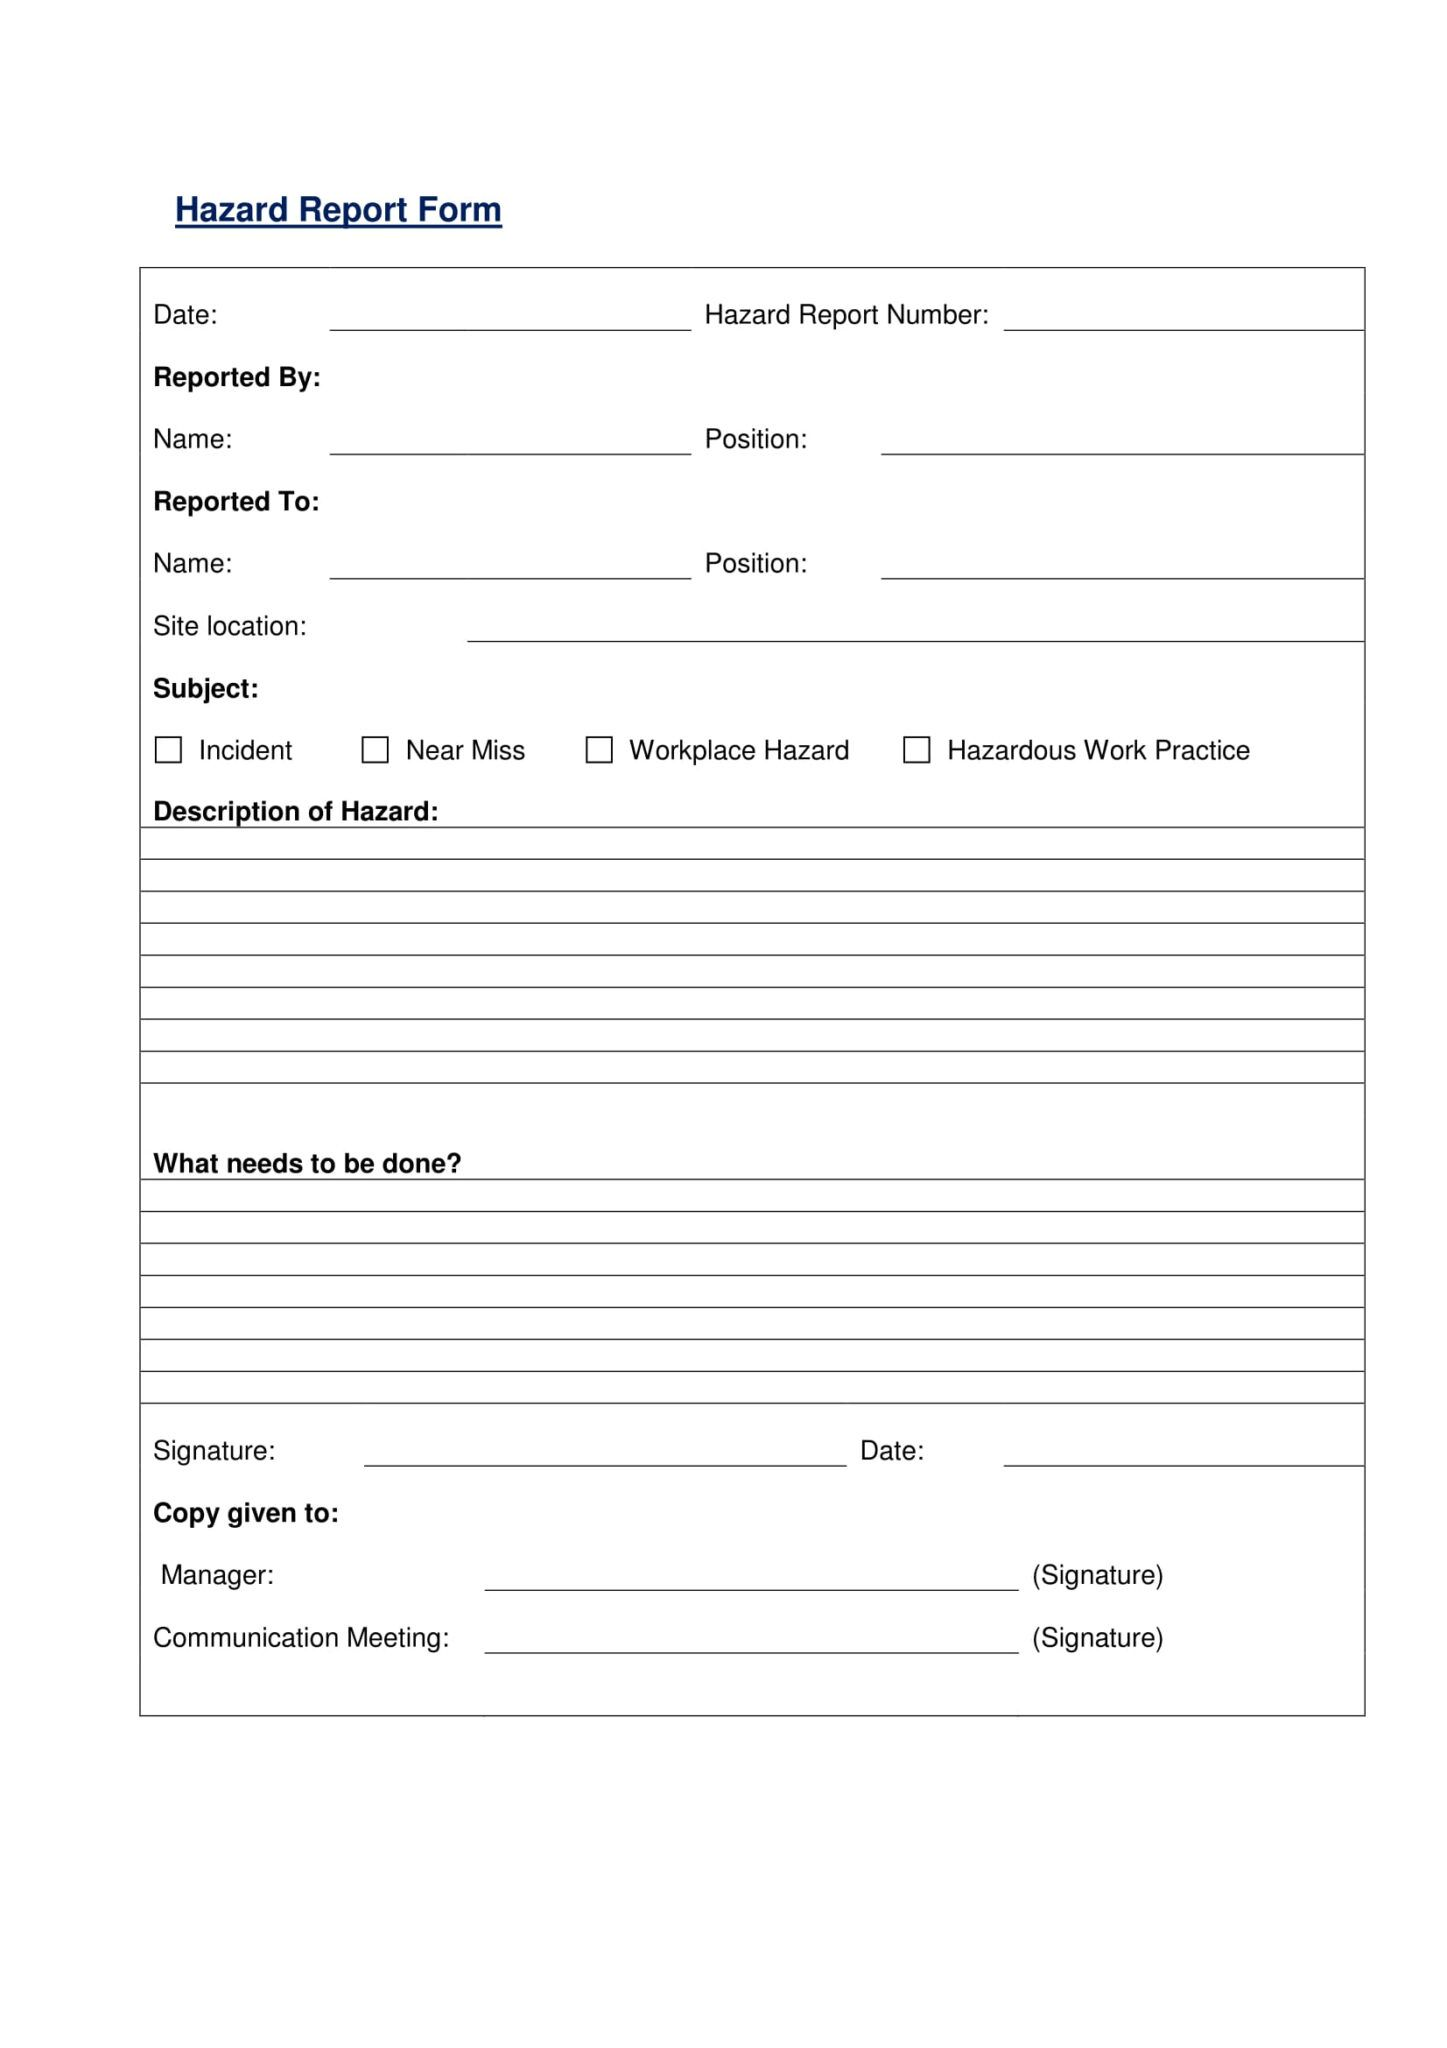 Free 13 Hazard Report Forms In Ms Word Pdf With Hazard Incident Report Form Template Incident Report Form Ms Word Incident Report